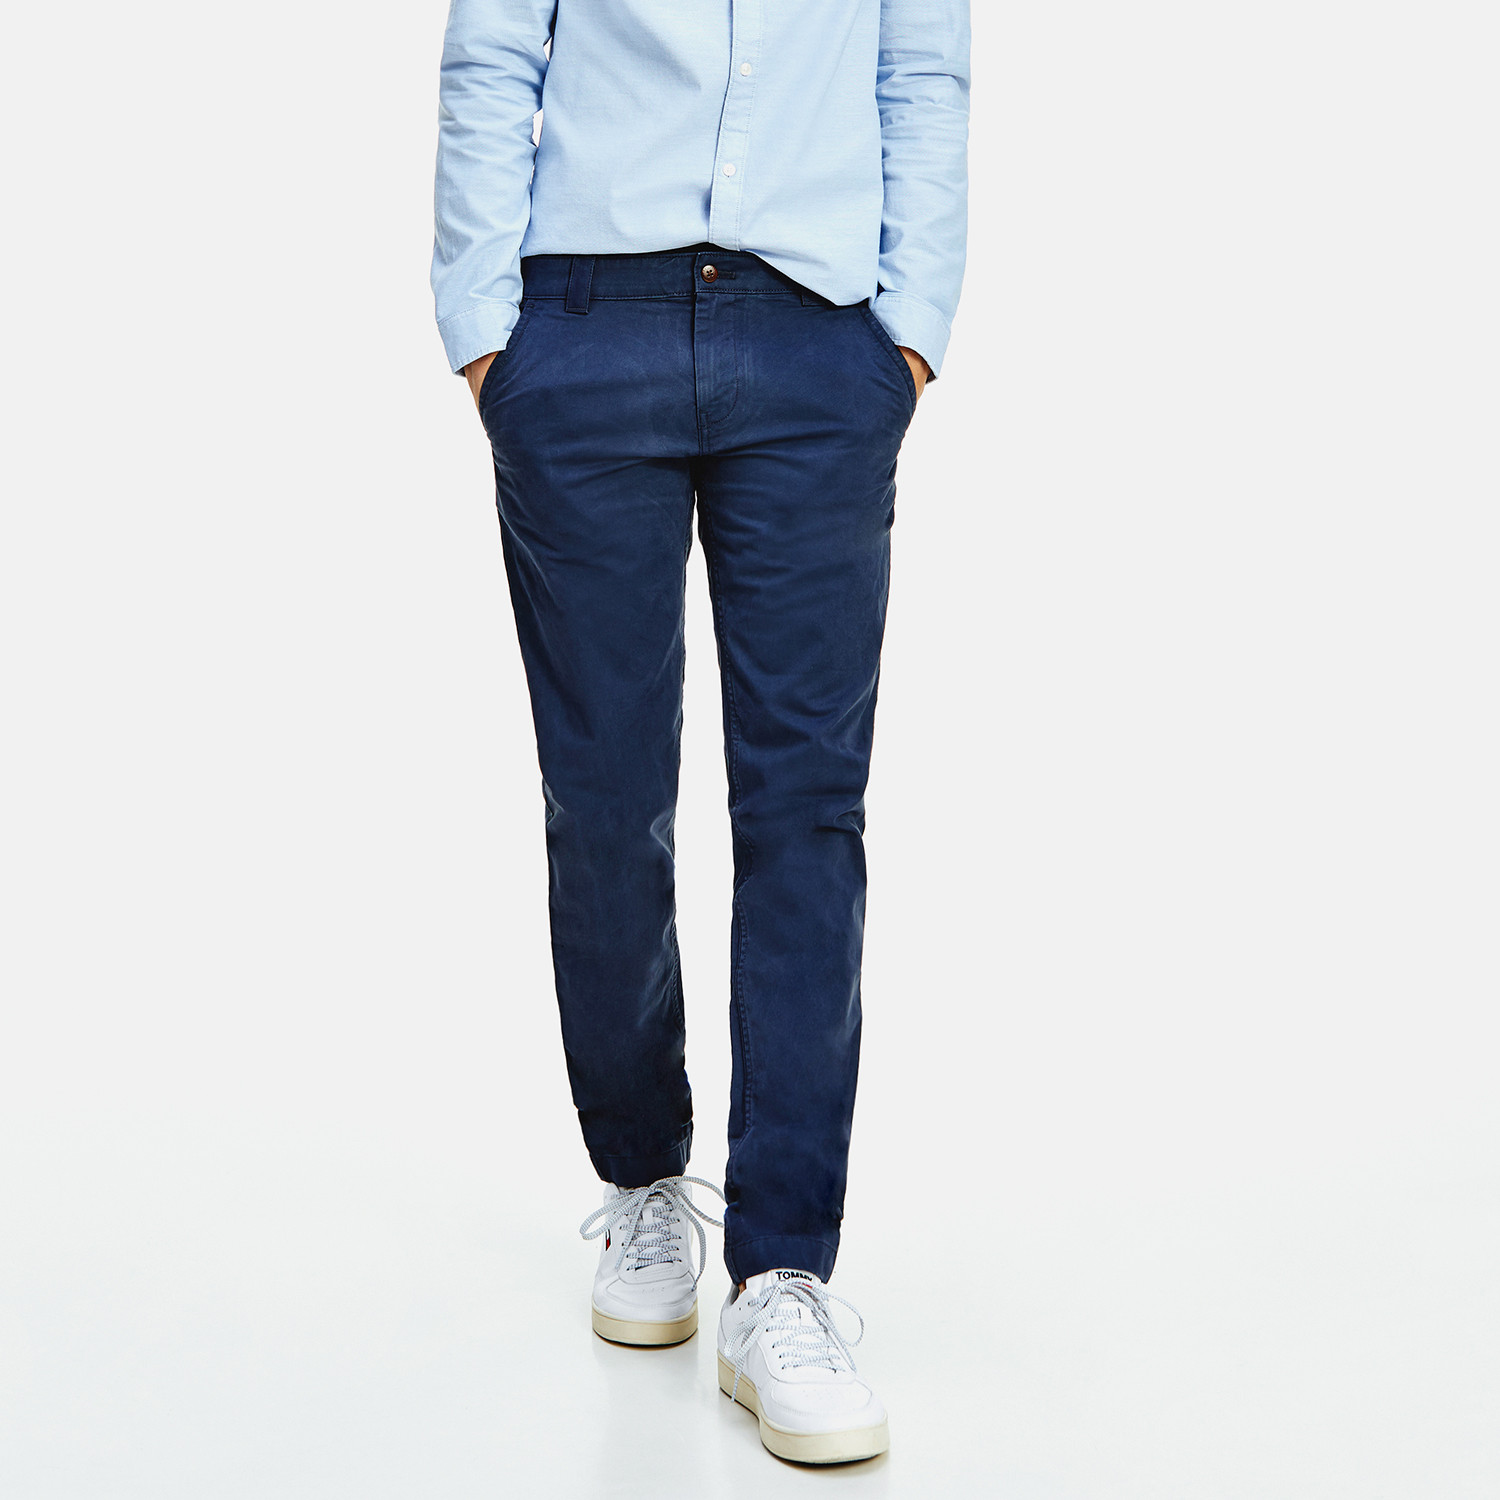 Tommy Jeans Scanton Ανδρικό Chino Παντελόνι (Μήκος 34L) (9000074767_45076)